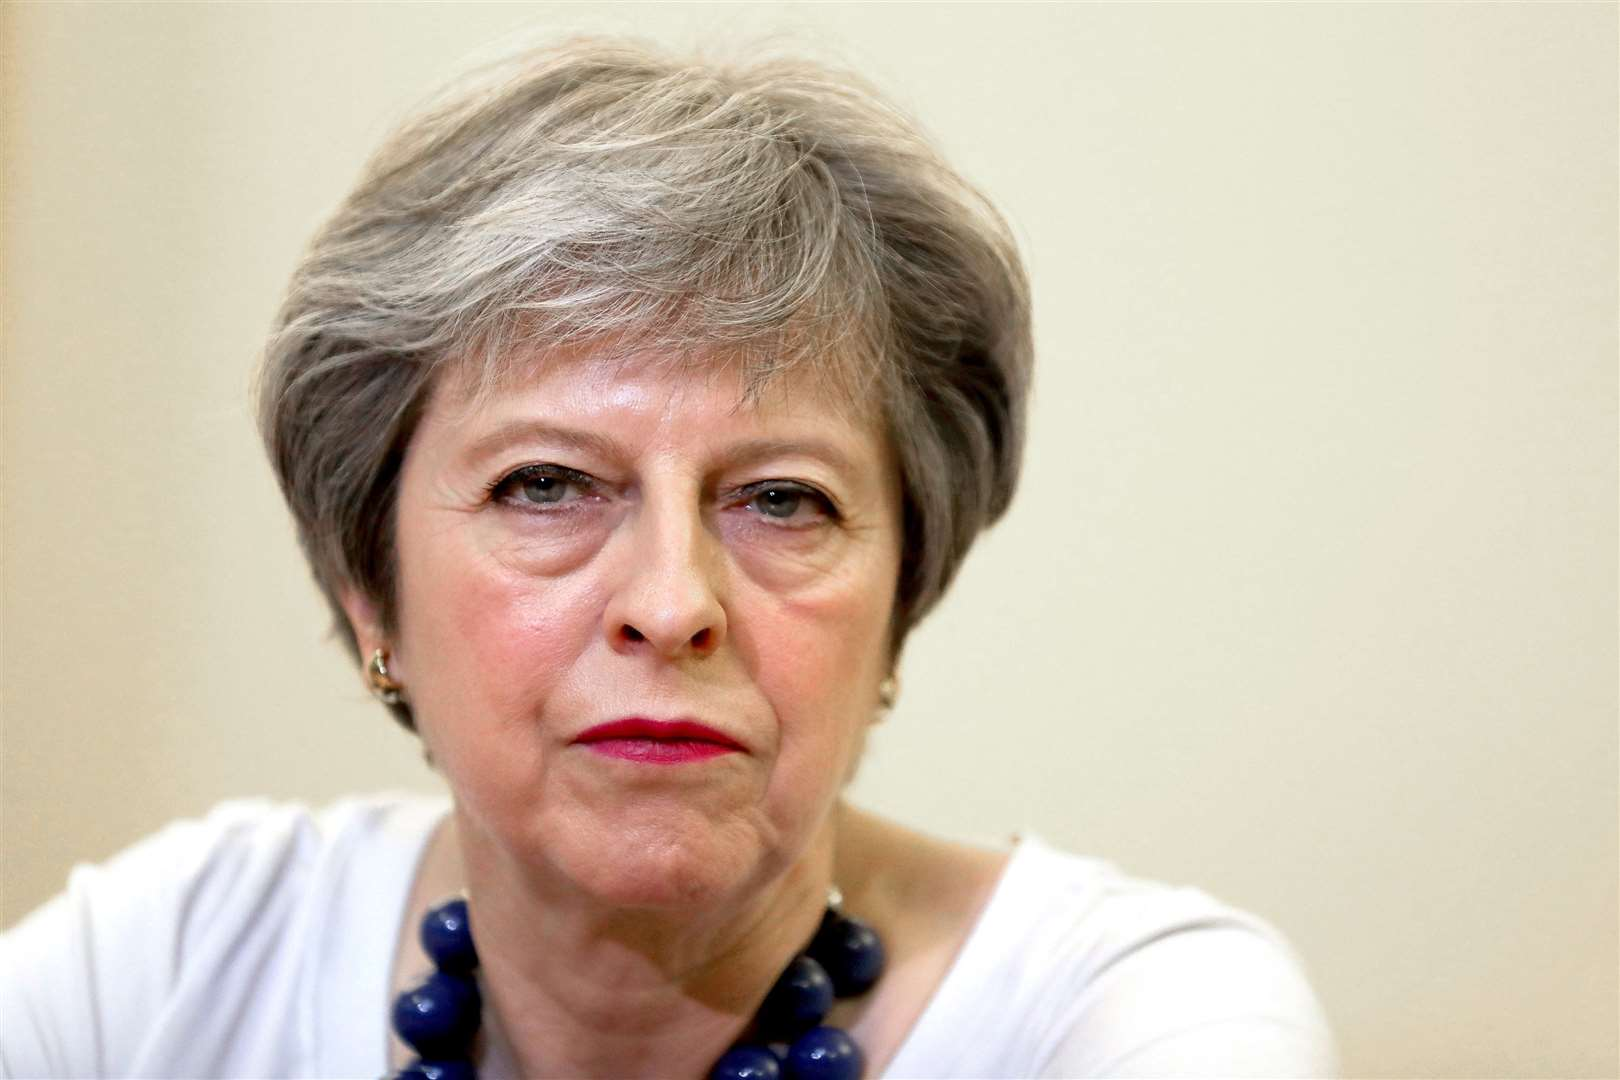 Prime Minister Theresa May announced she is to resign as party leader and Prime Minister